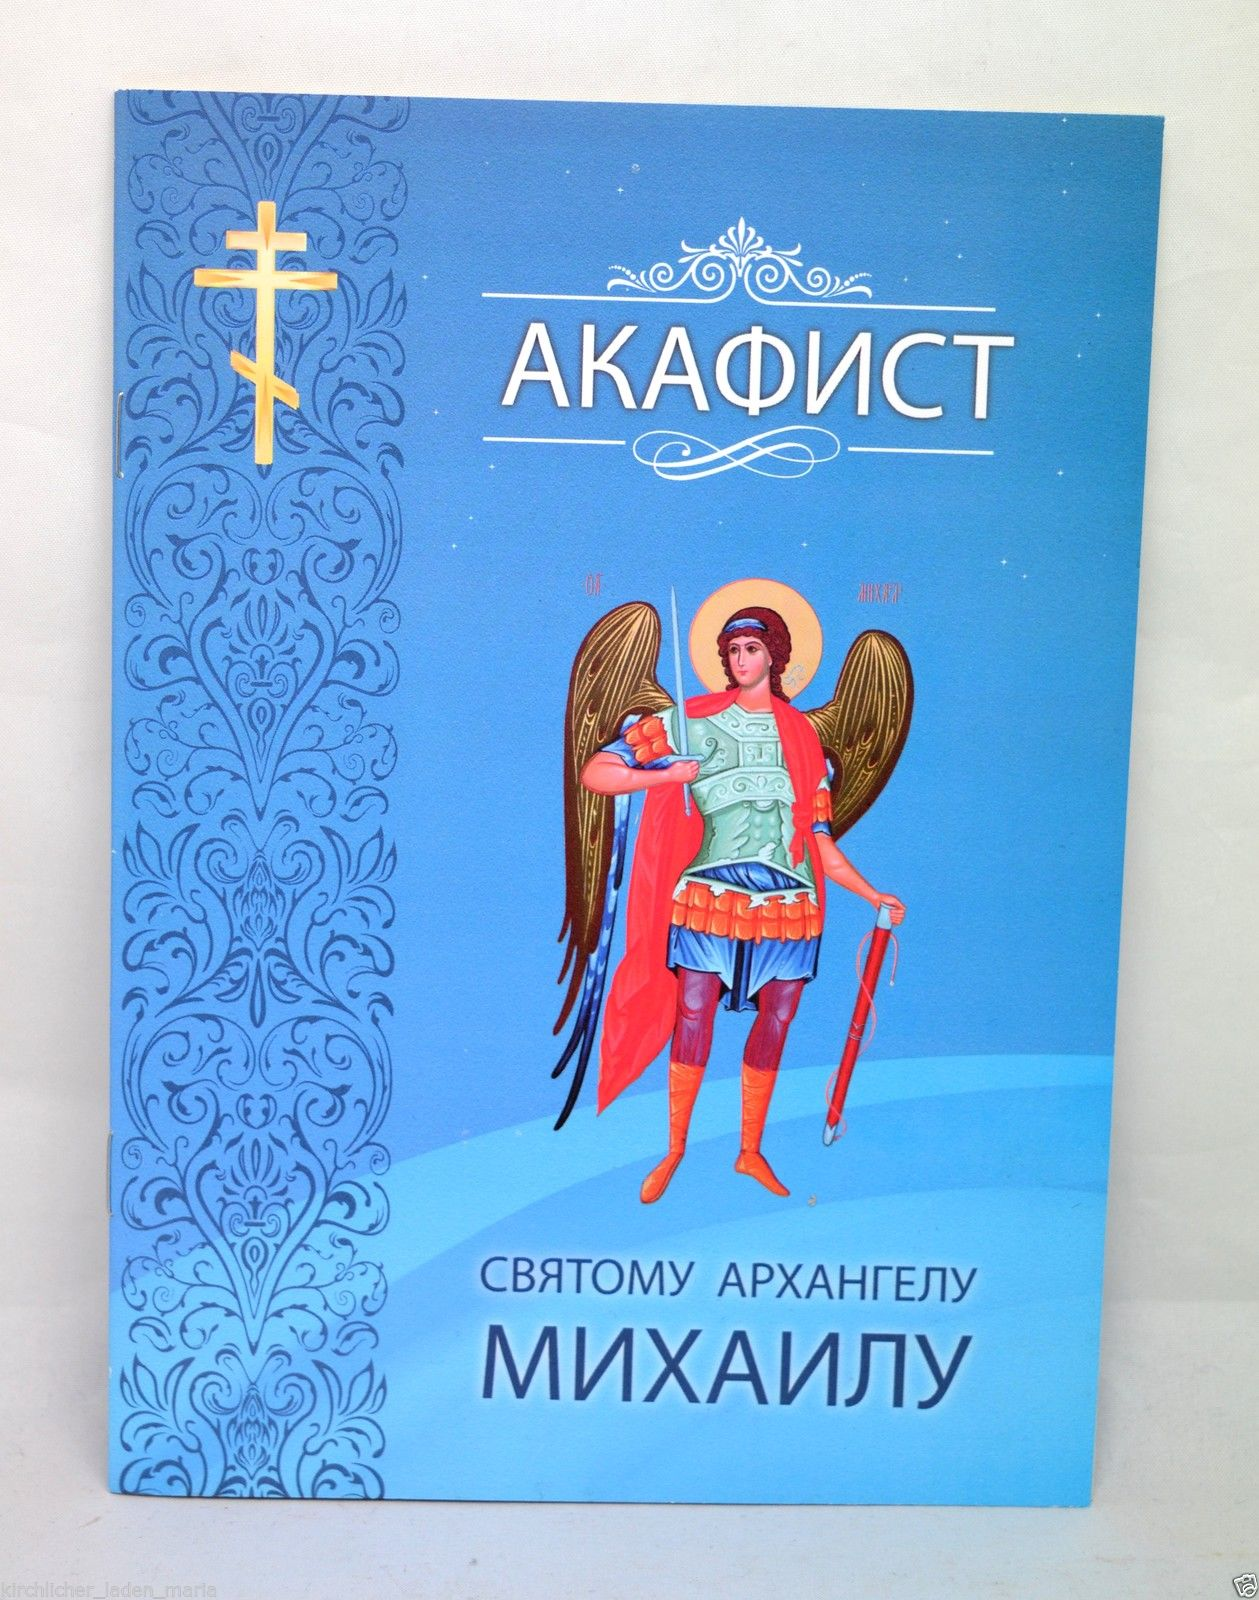 Akathist to St. Archangel Michael